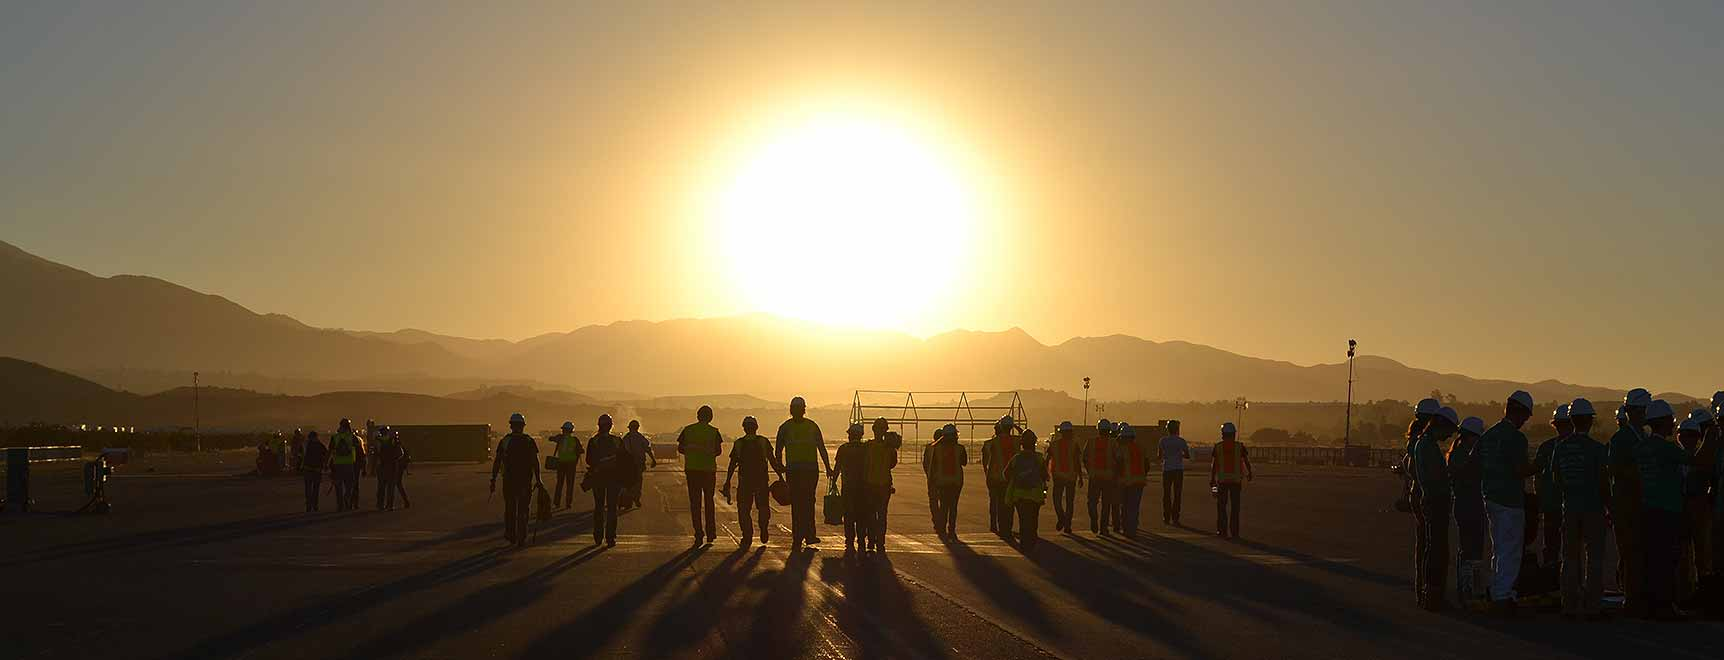 Photo of students in construction gear walking under a rising sun.